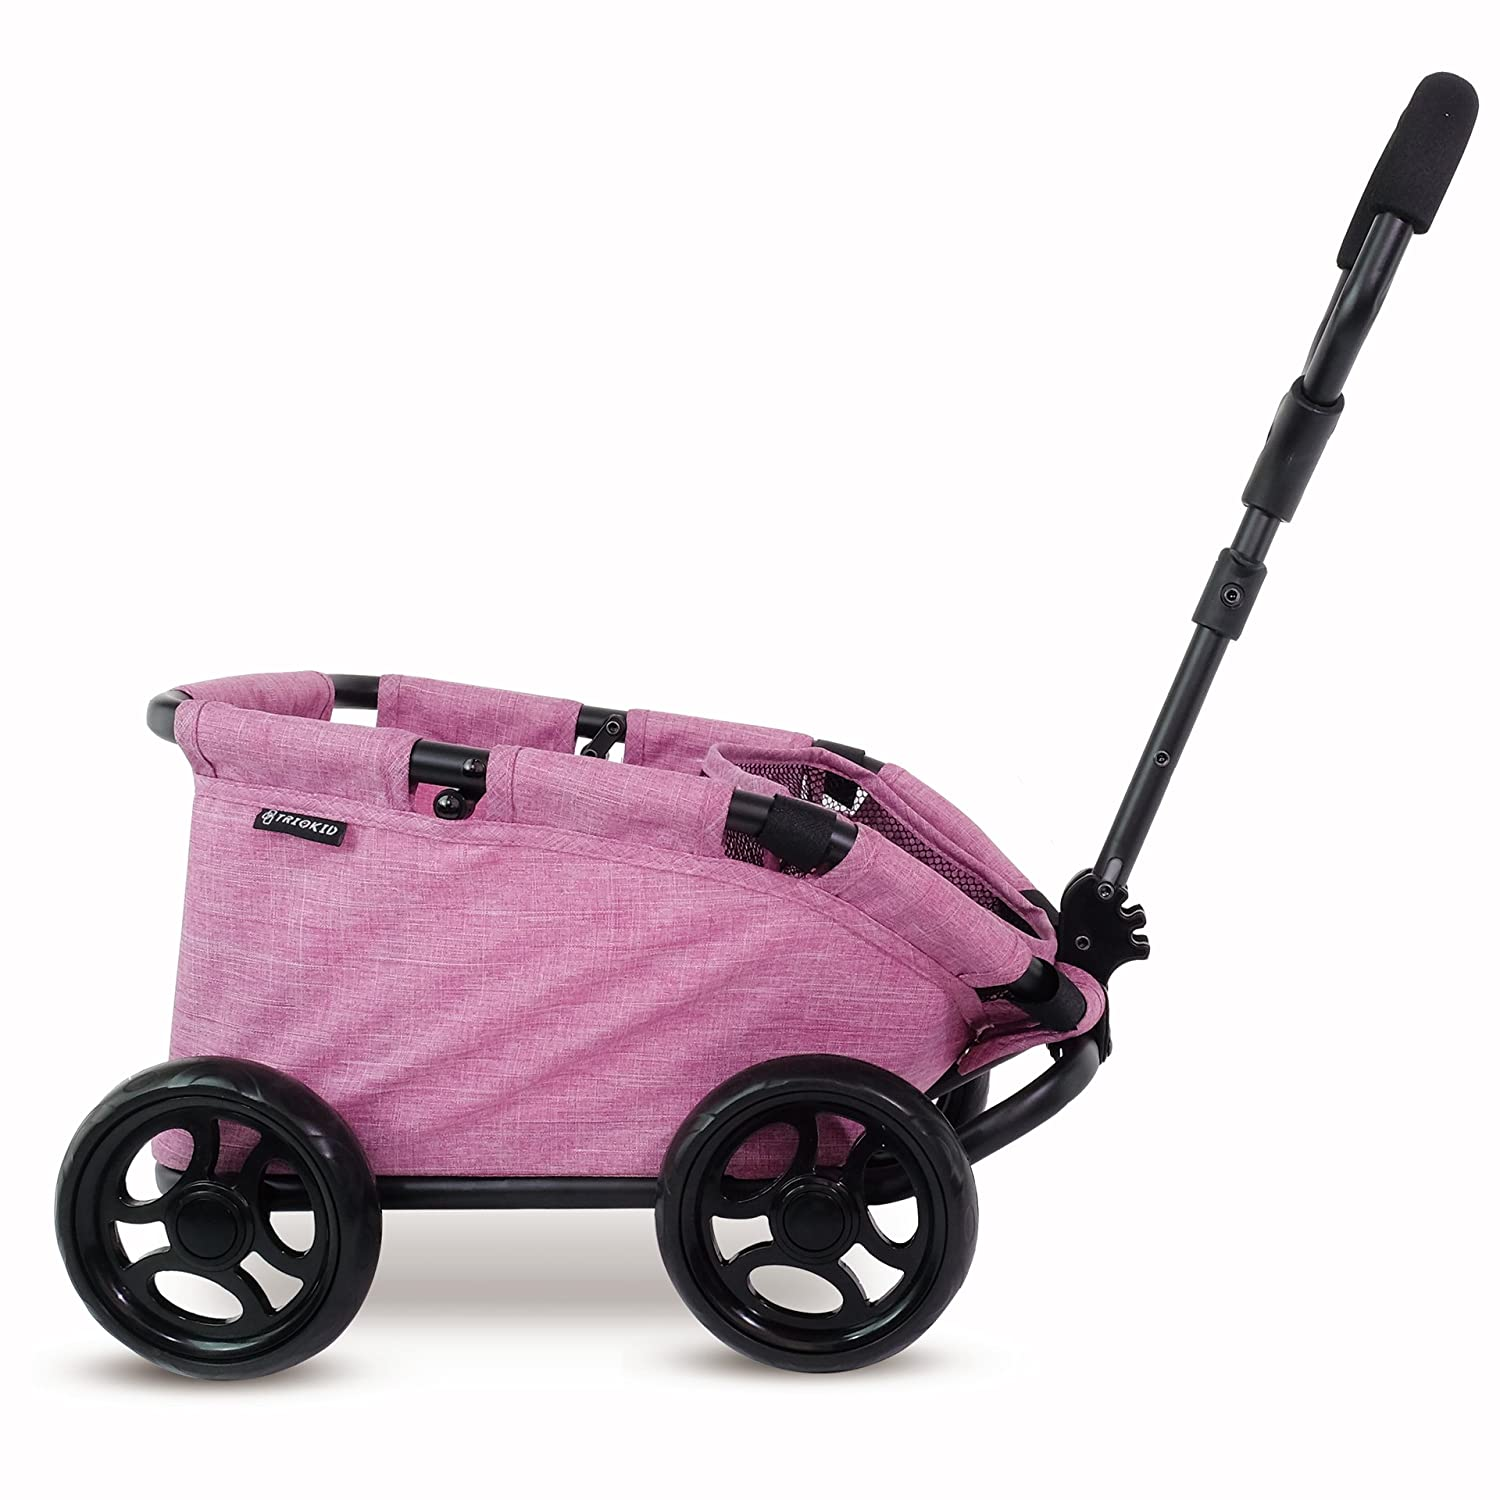 Triokid NEW Design My First Toy Wagon Trioswagon Grape Purple Deluxe Doll Stroller Drawable Fabric   B01N12JSZF